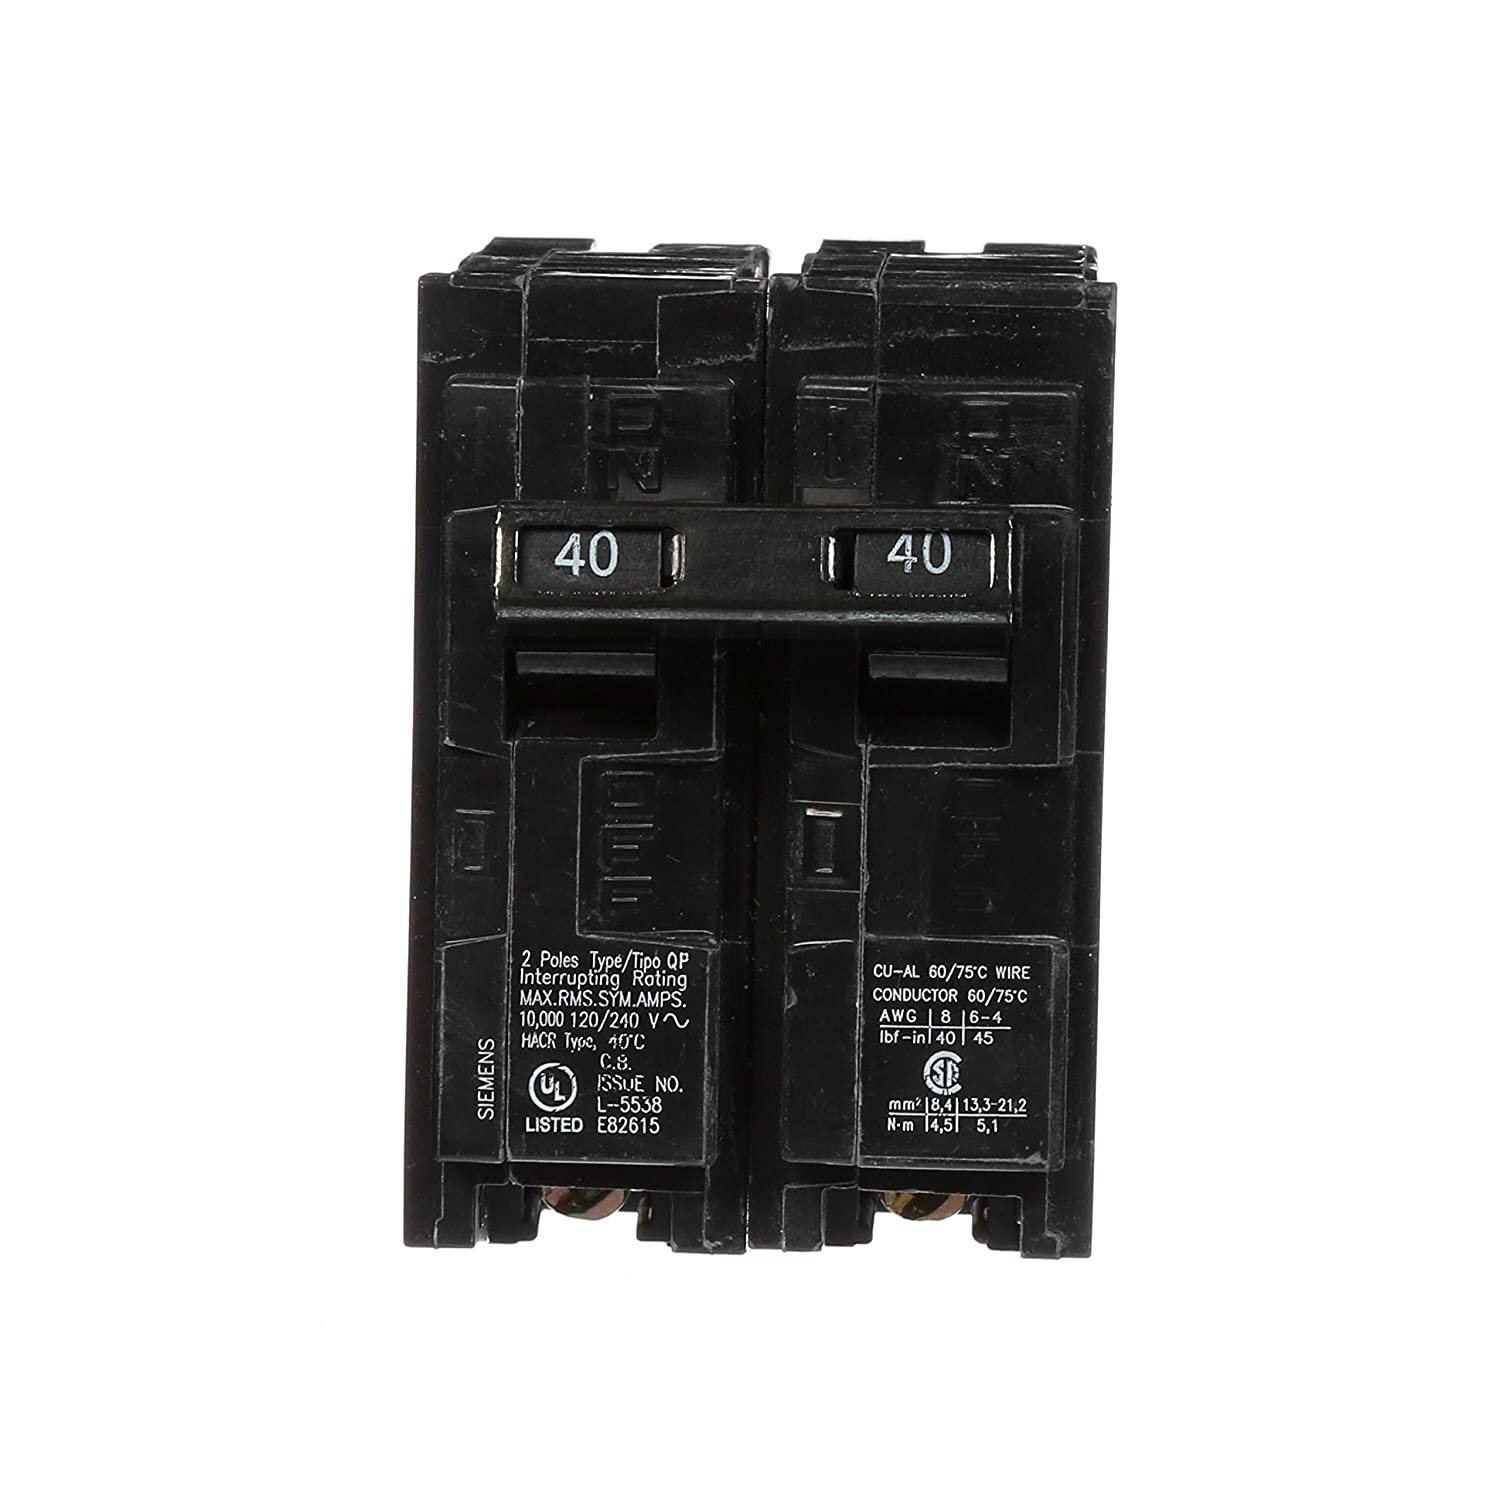 Q240 40 amp double pole type qp circuit breaker amazon greentooth Images